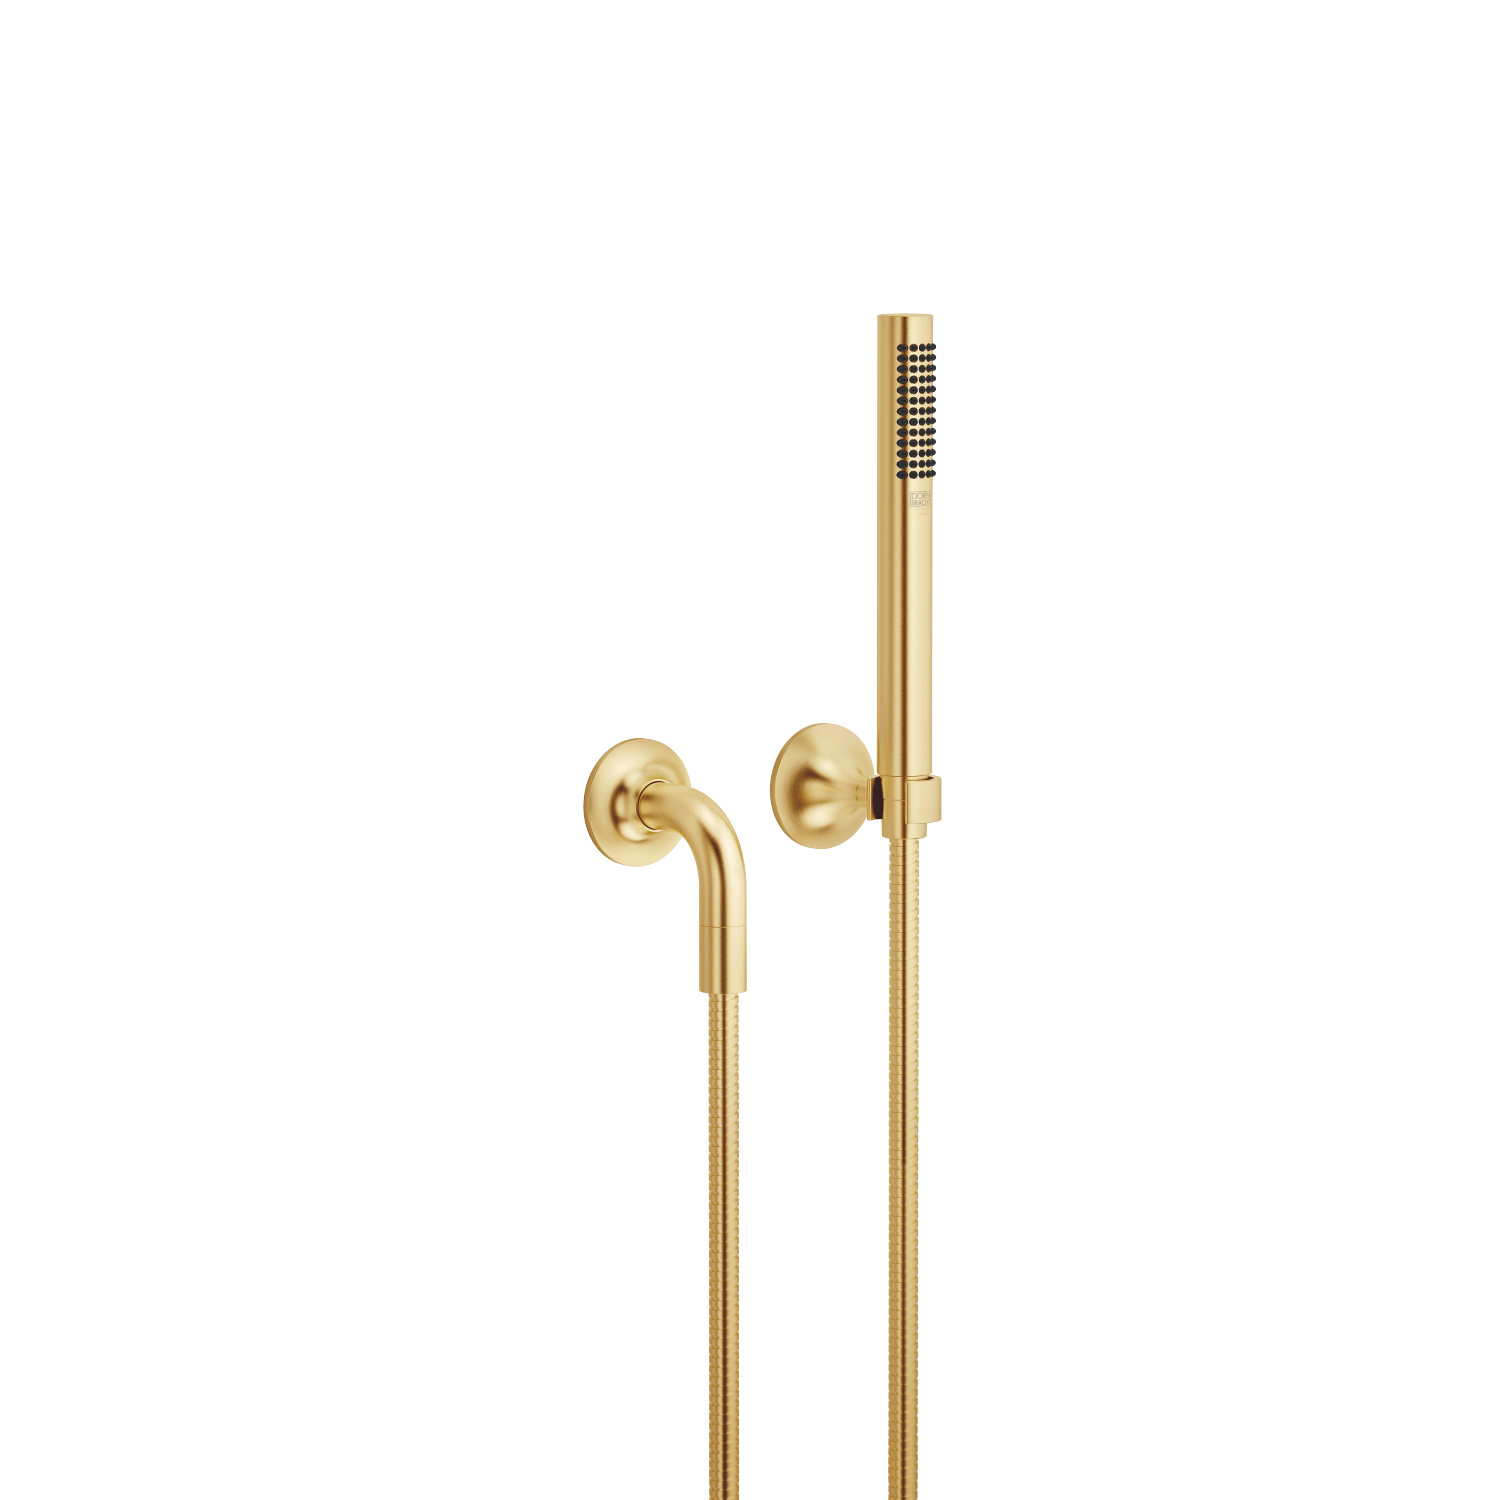 Hand shower set with individual rosettes - brushed Durabrass